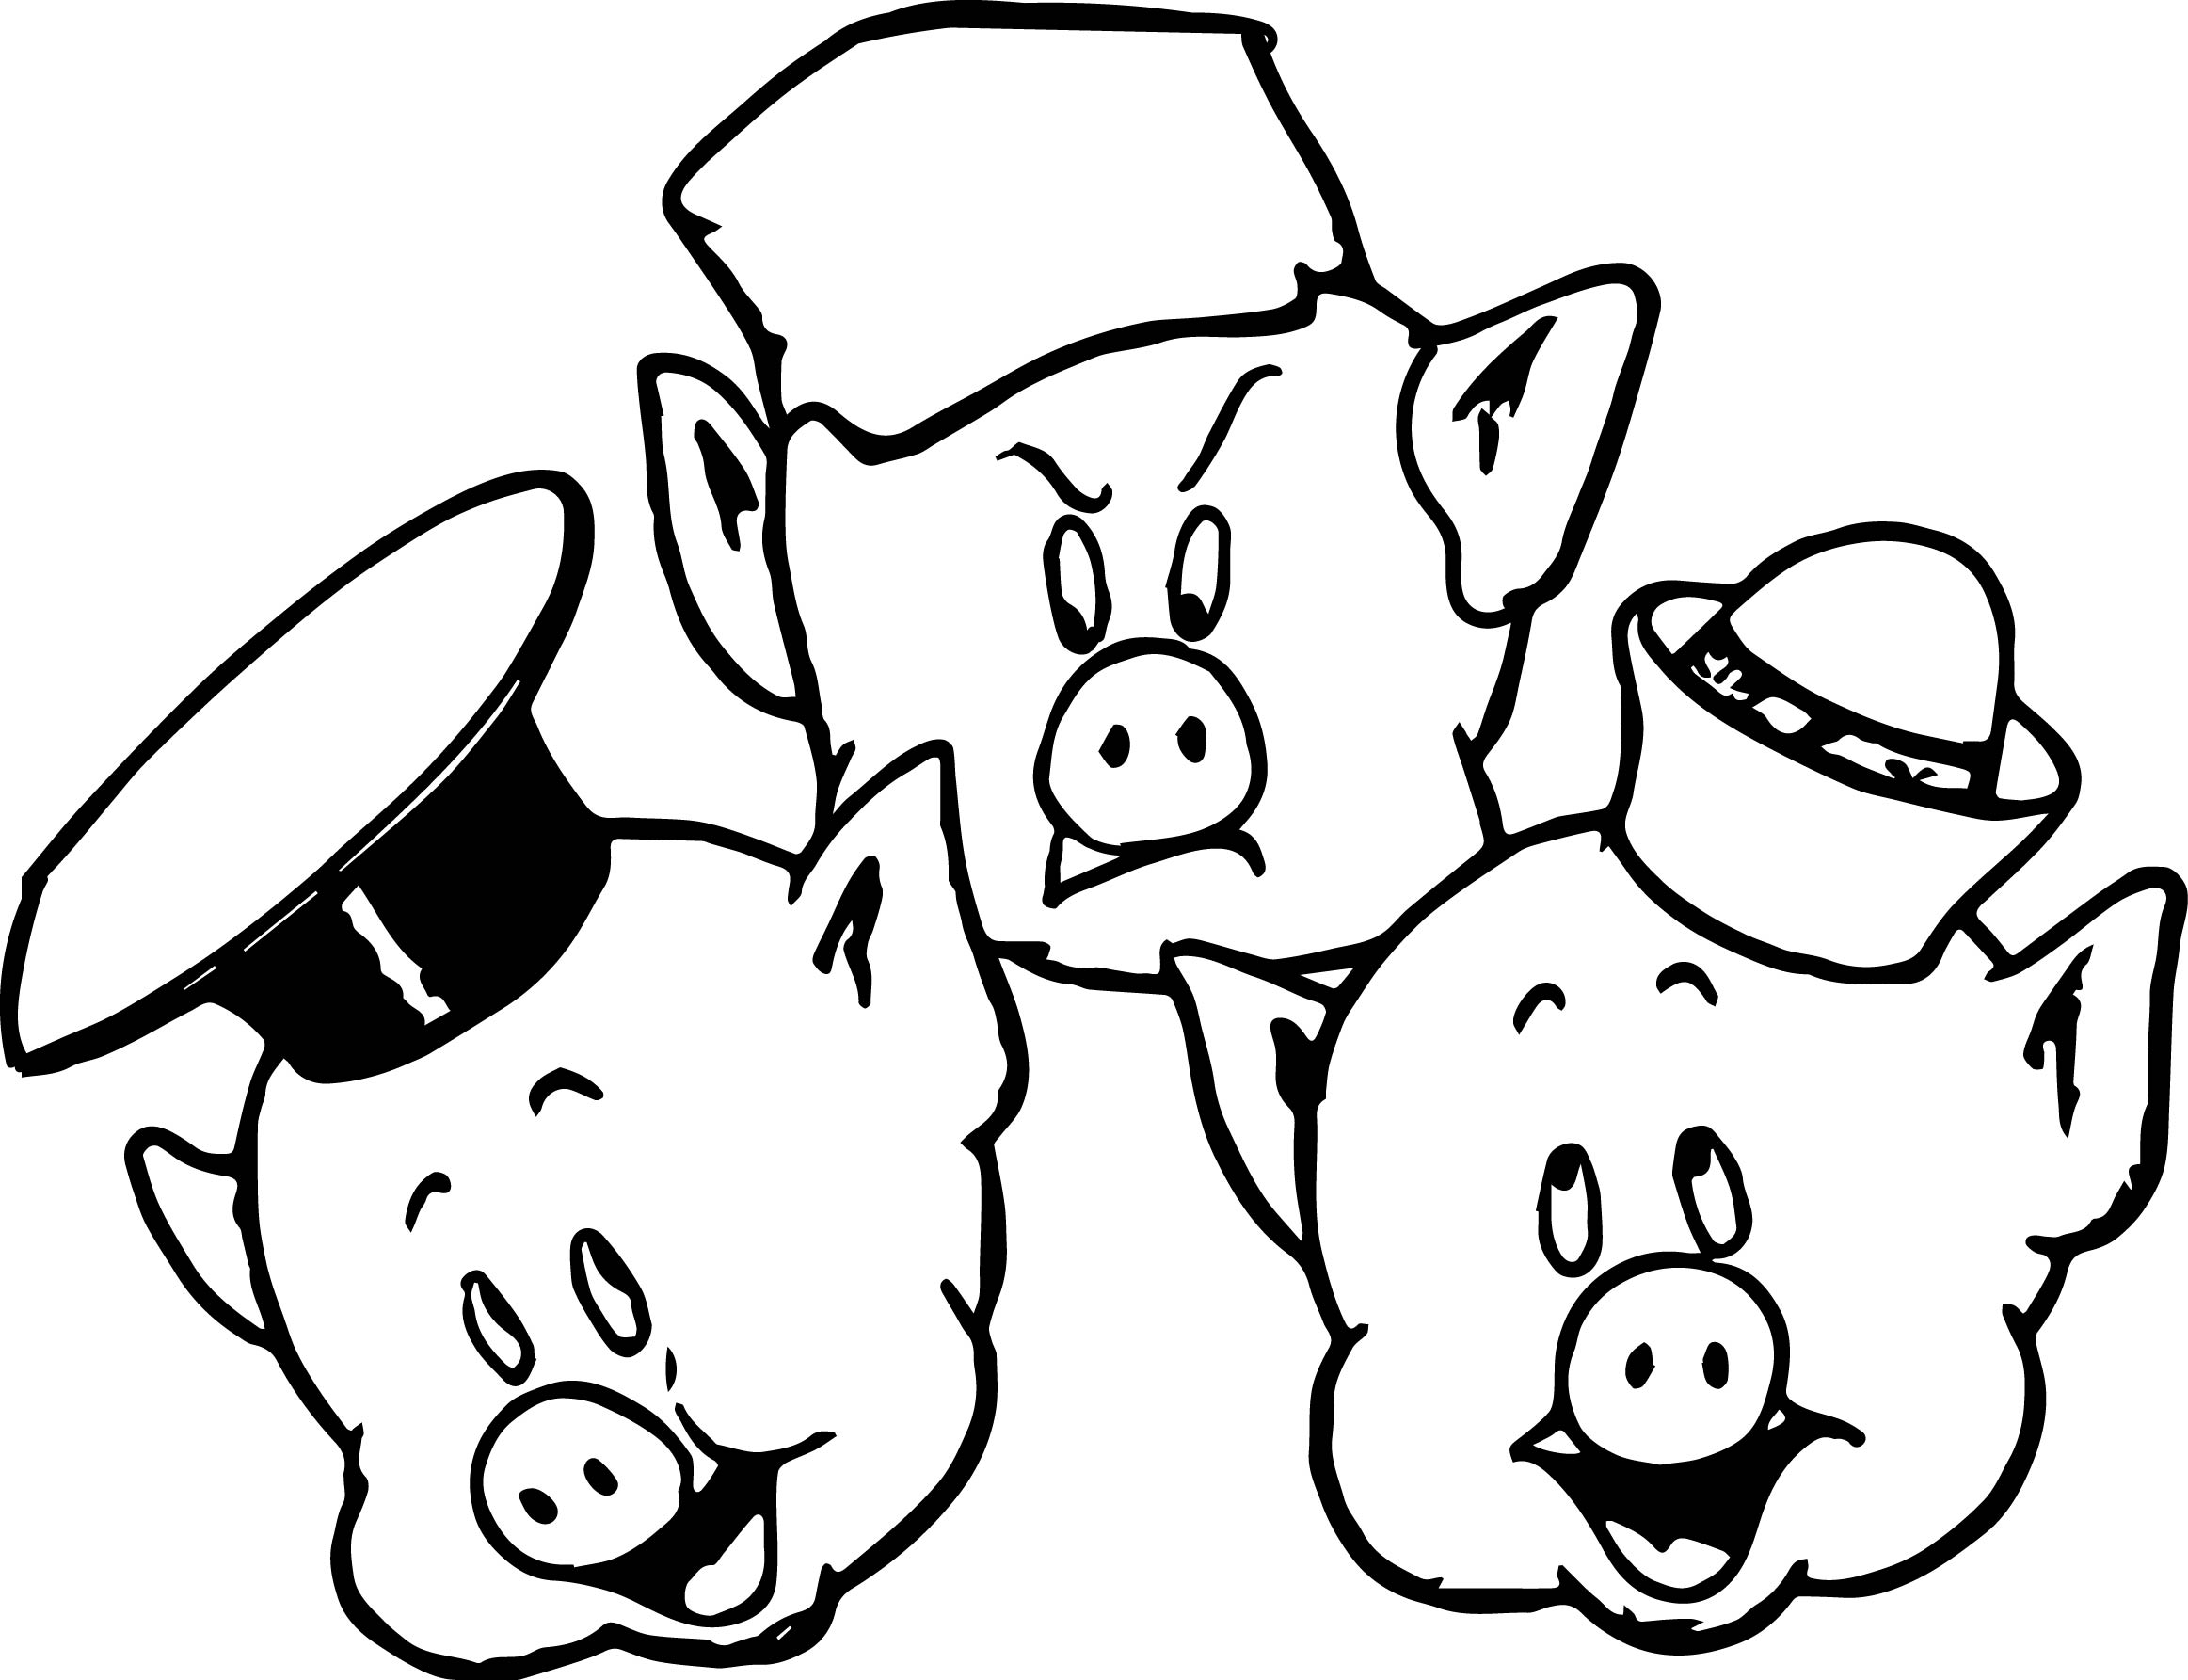 Coloring pages 3 little pigs - 3 Little Pigs Face Coloring Page